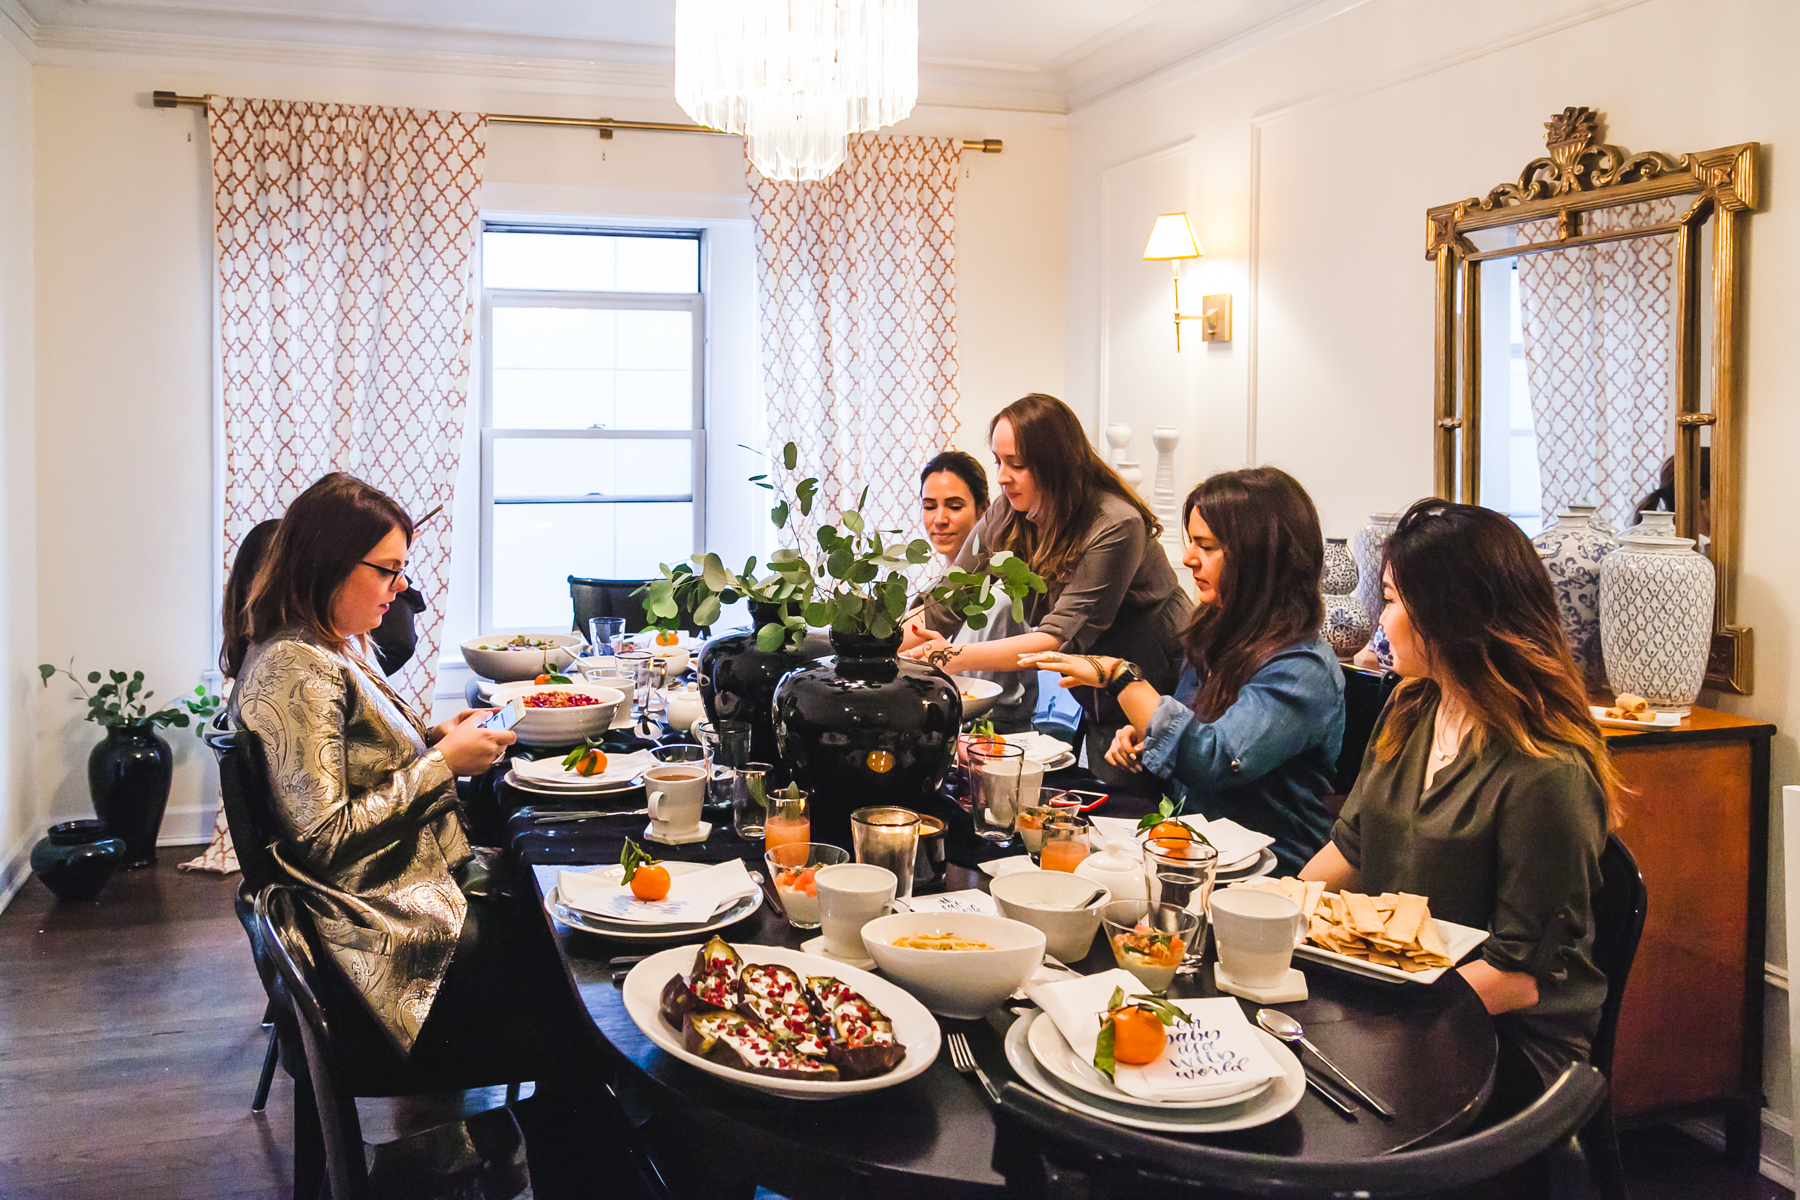 NoMad Luxuries hosts a blogger brunch inspired Mediterranean menu for networking in chicago